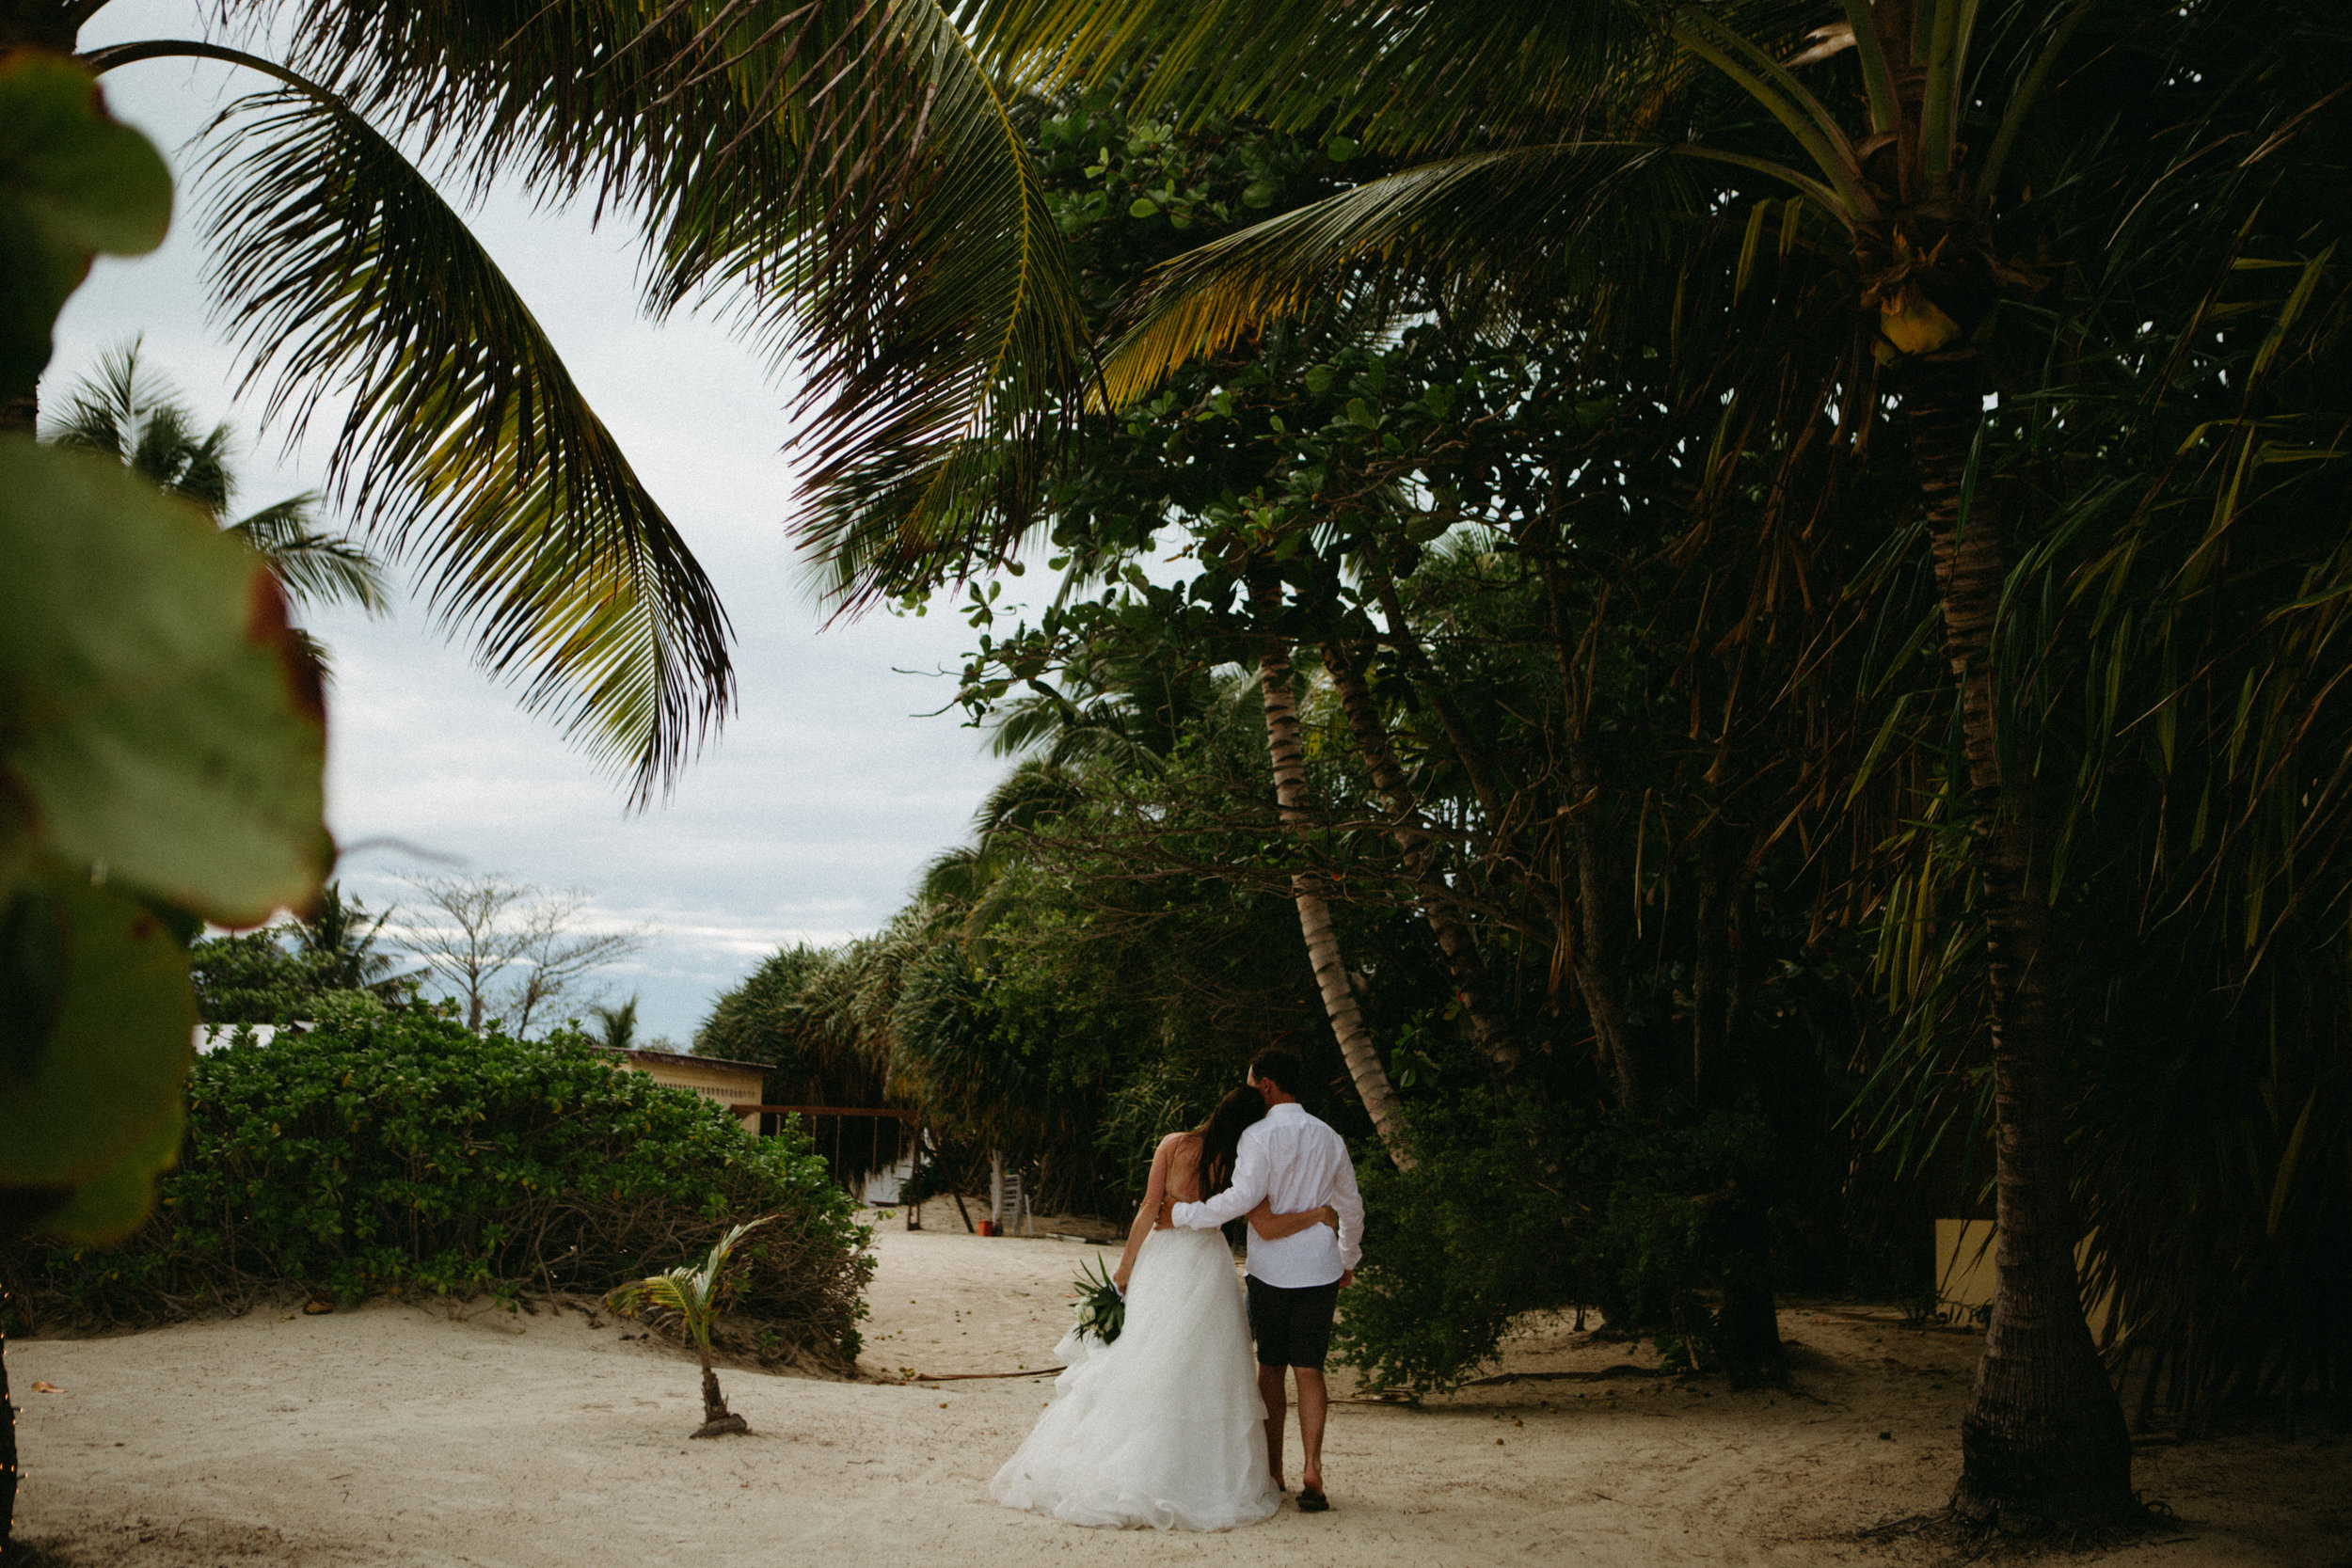 san-pescador-belize-wedding-christinemariephoto-j-k-103.jpg